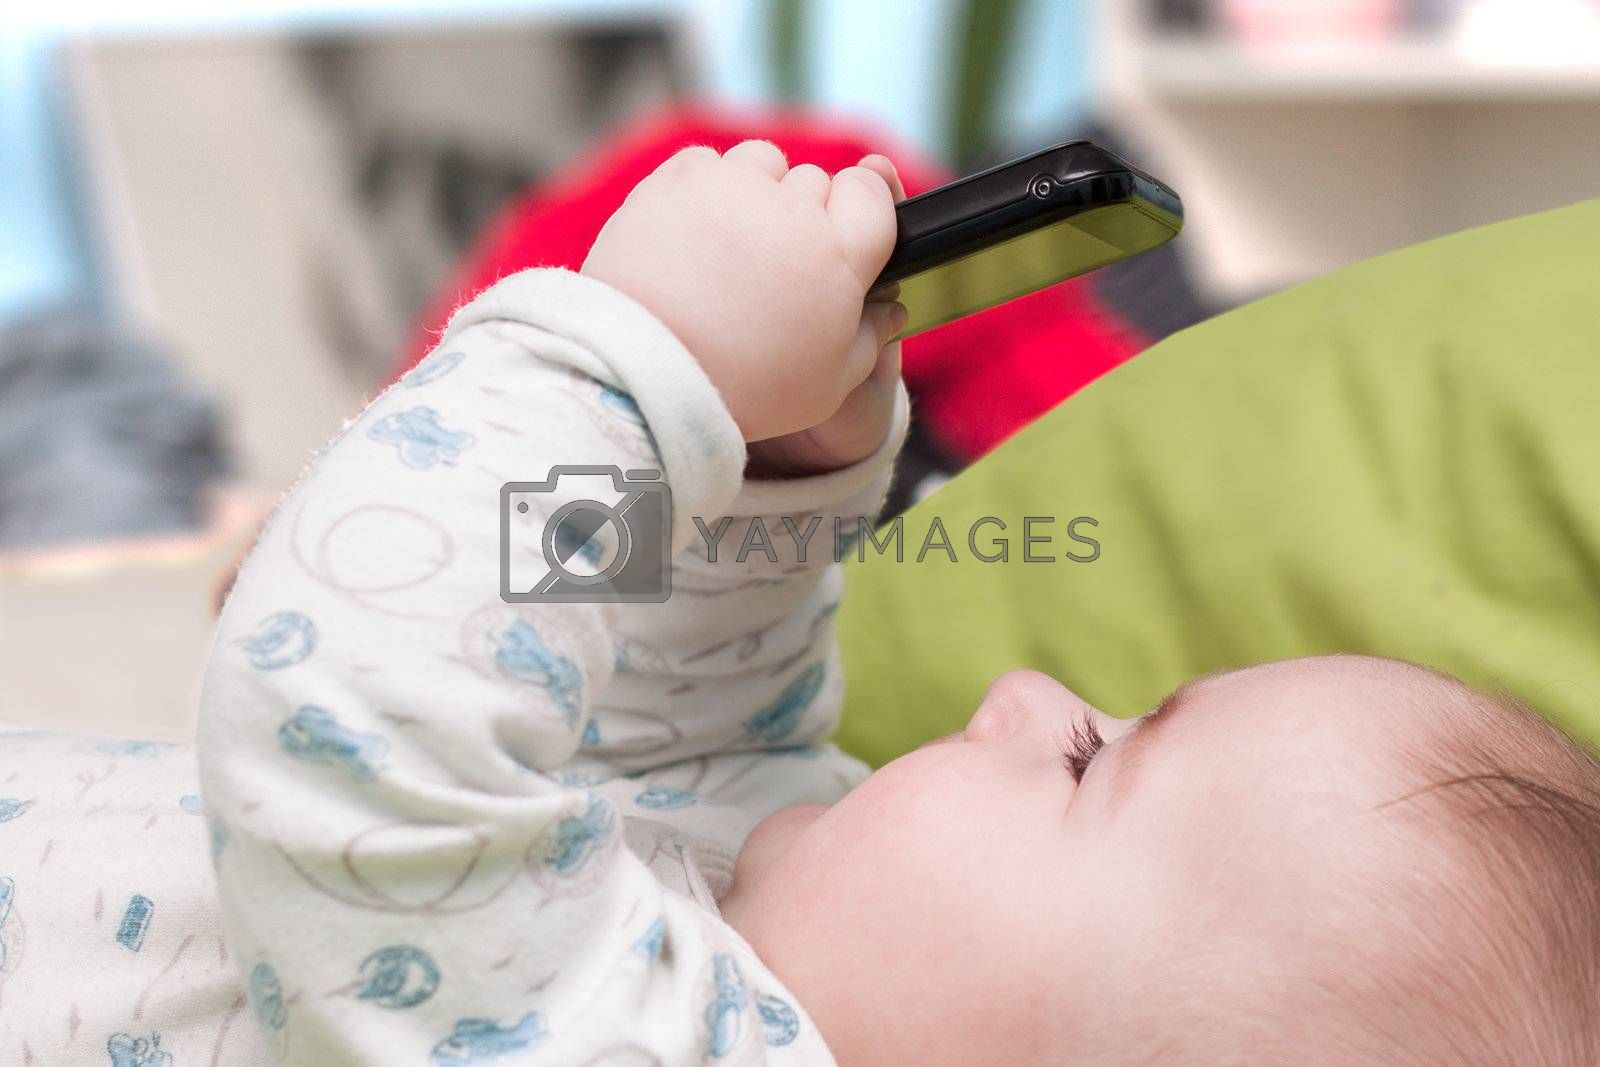 Baby with a mobile phone in his hands